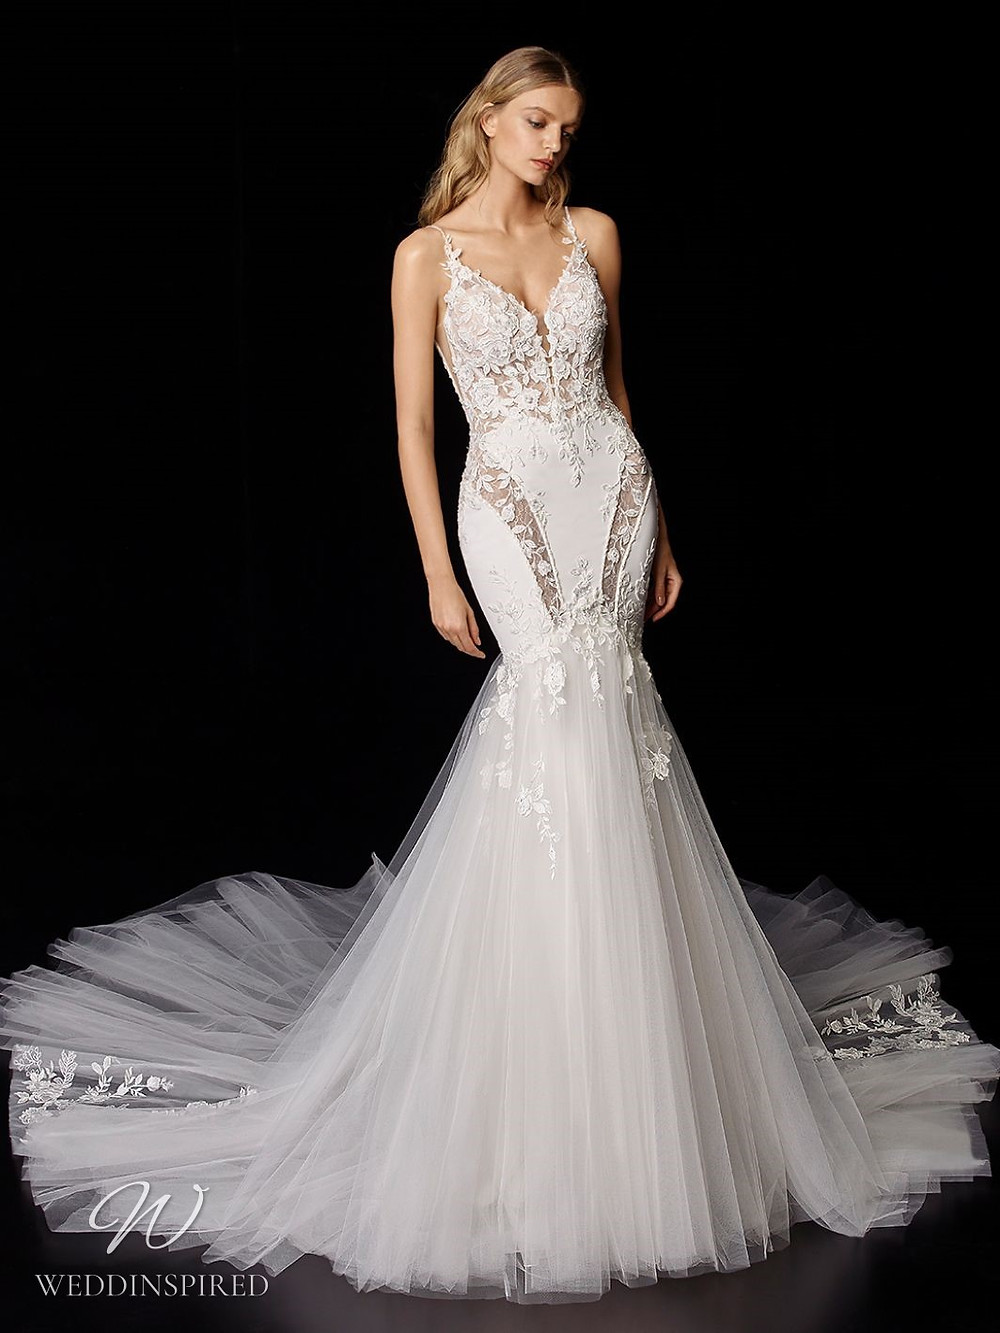 An Enzoani lace and tulle mermaid wedding dress with illusion inserts and a train